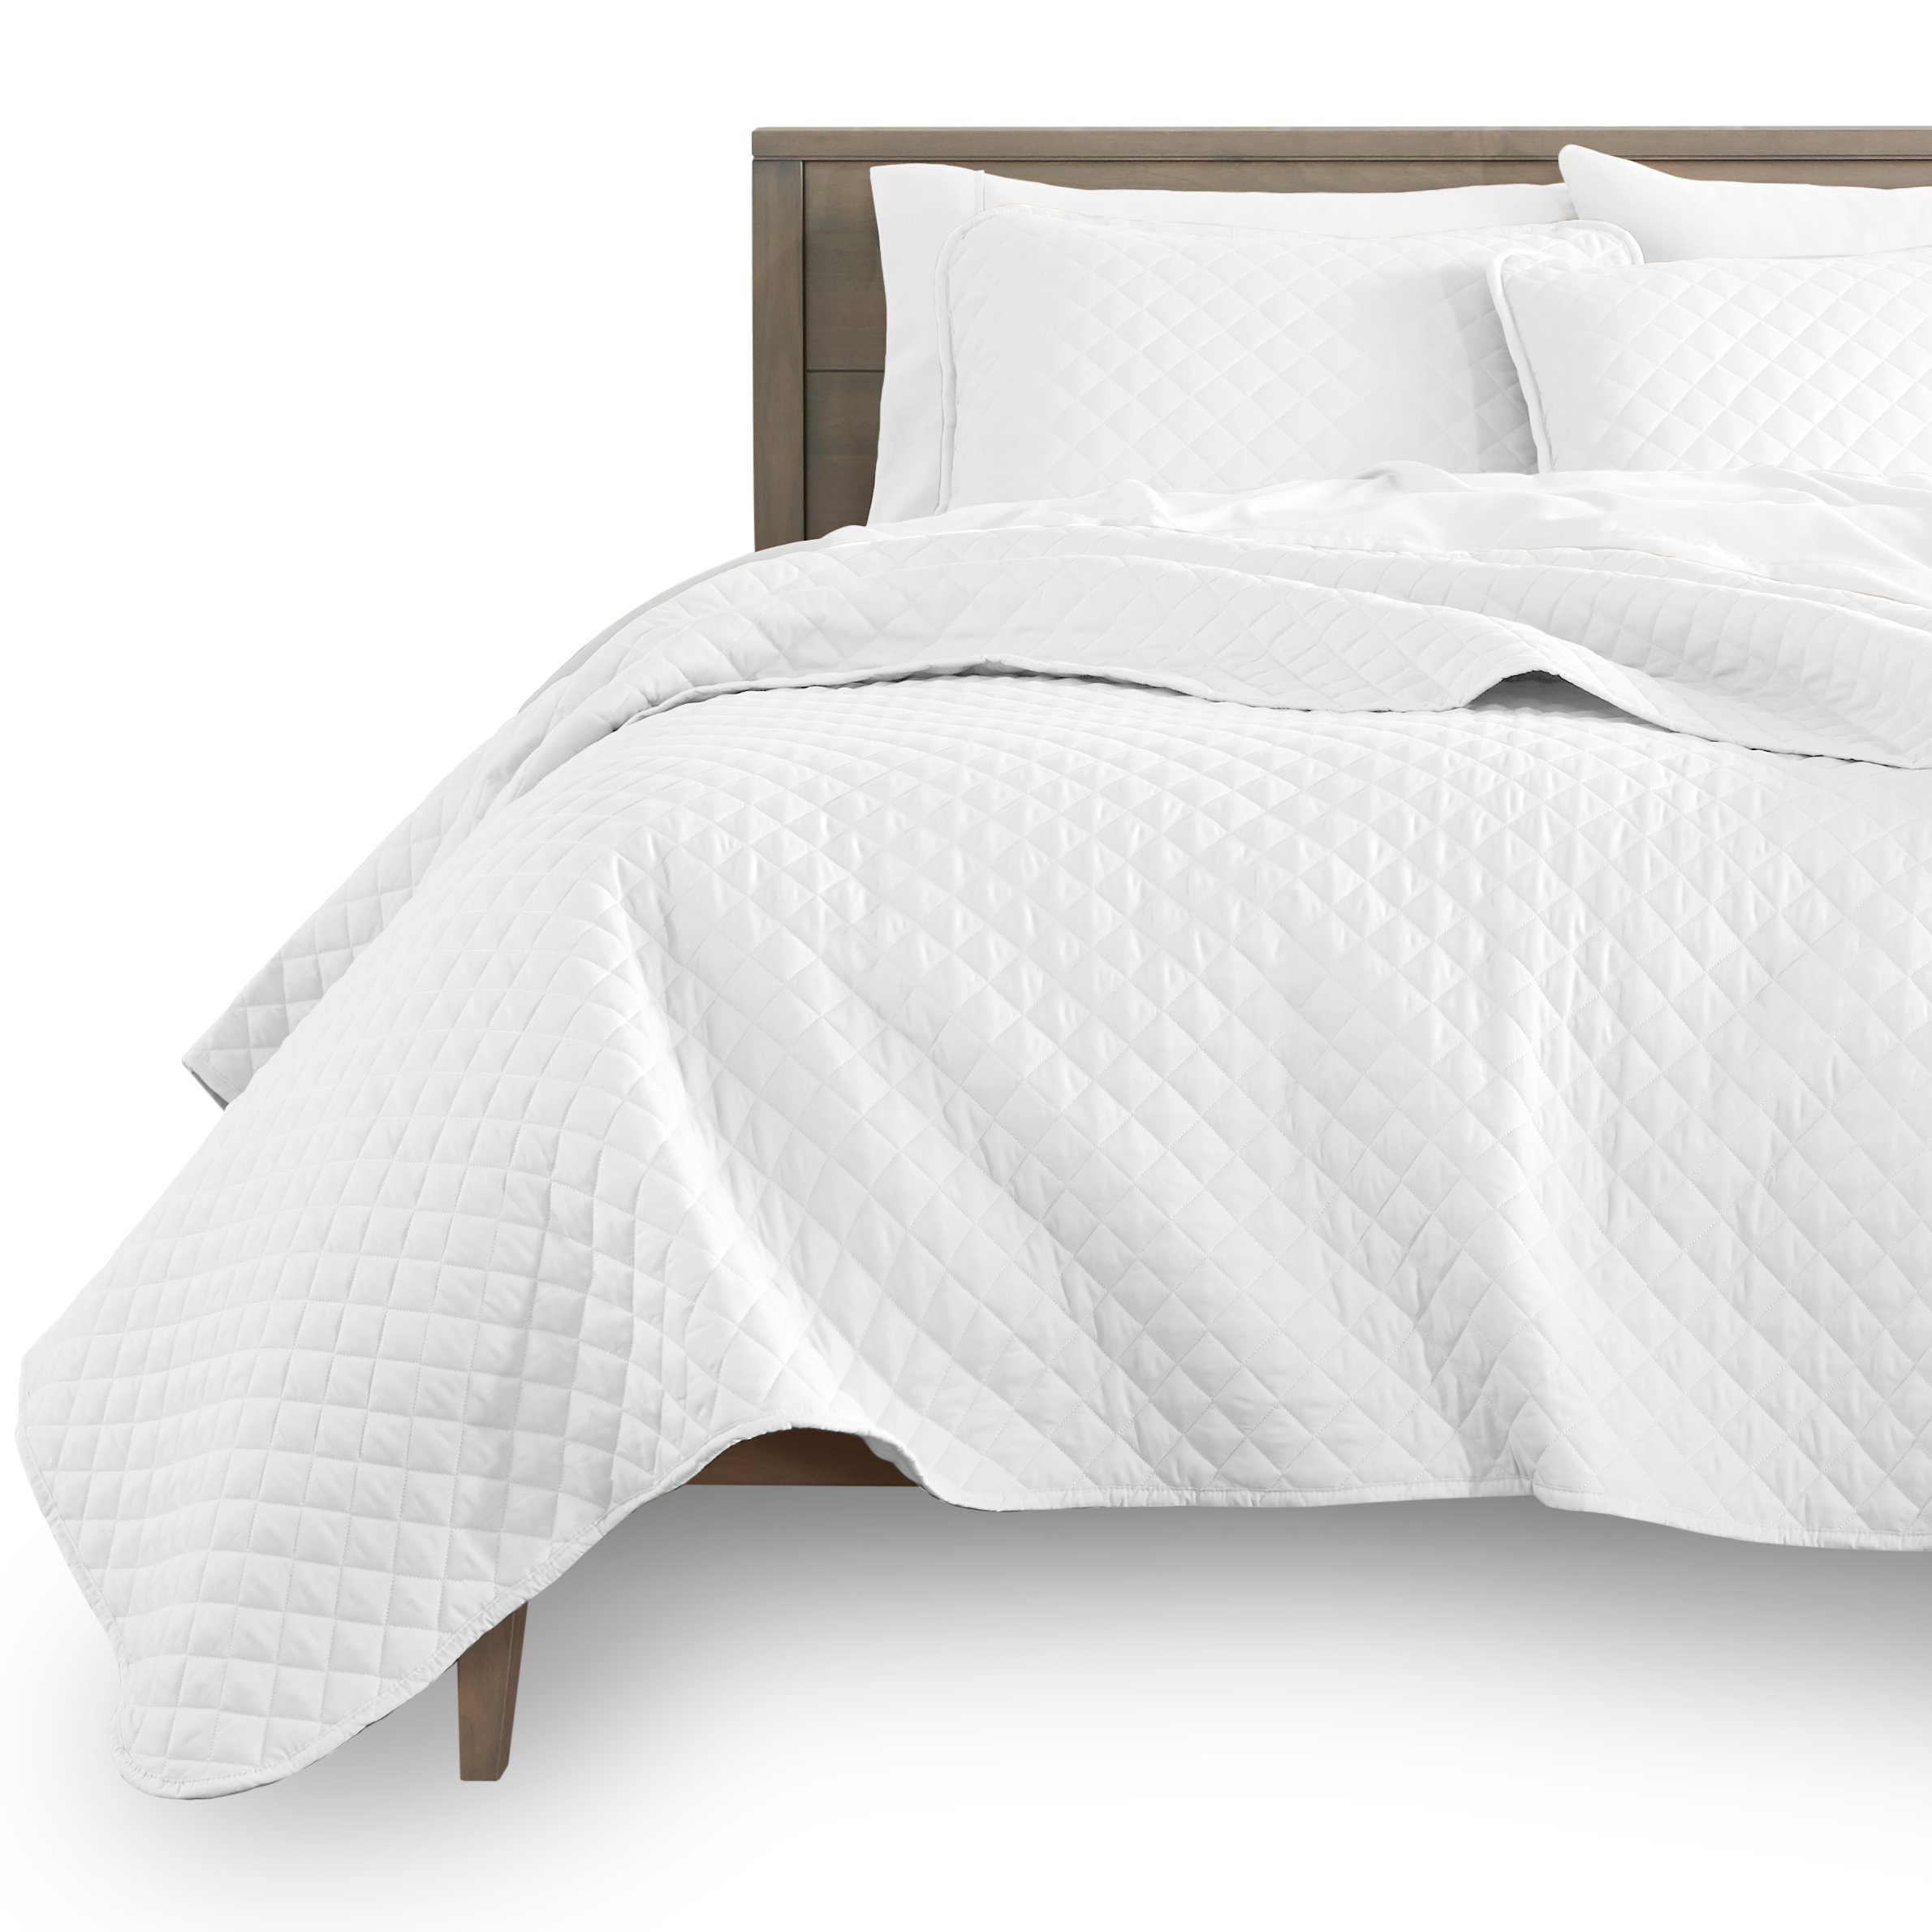 KOSMOS Full / Queen Home Quilt Bed Sheets Bed Textile Bedding 100% Microfiber Coverlet set